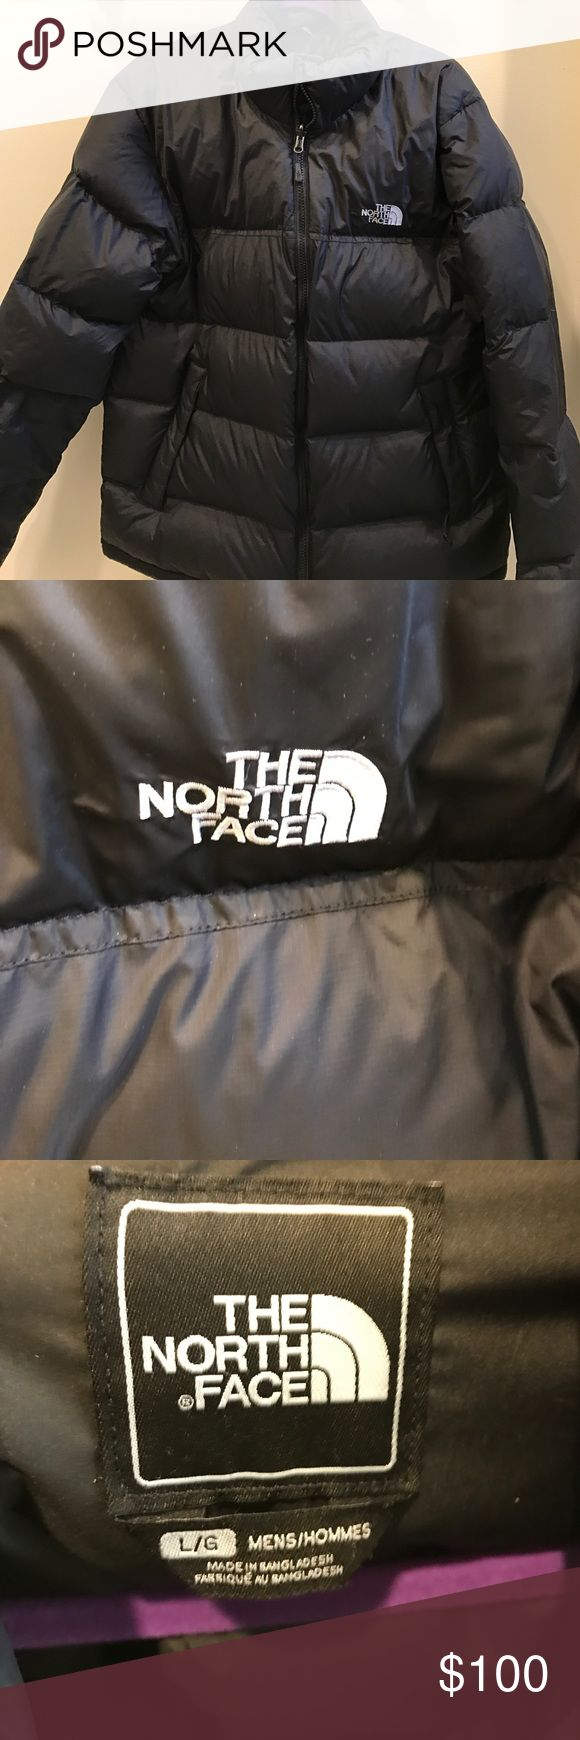 MENS NORTH FACE NUPTSE JACKET (Size L) Gently used Men's Nuptse North Face Jacket in black, size large. *no trades, all offers will be considered North Face Jackets & Coats Puffers